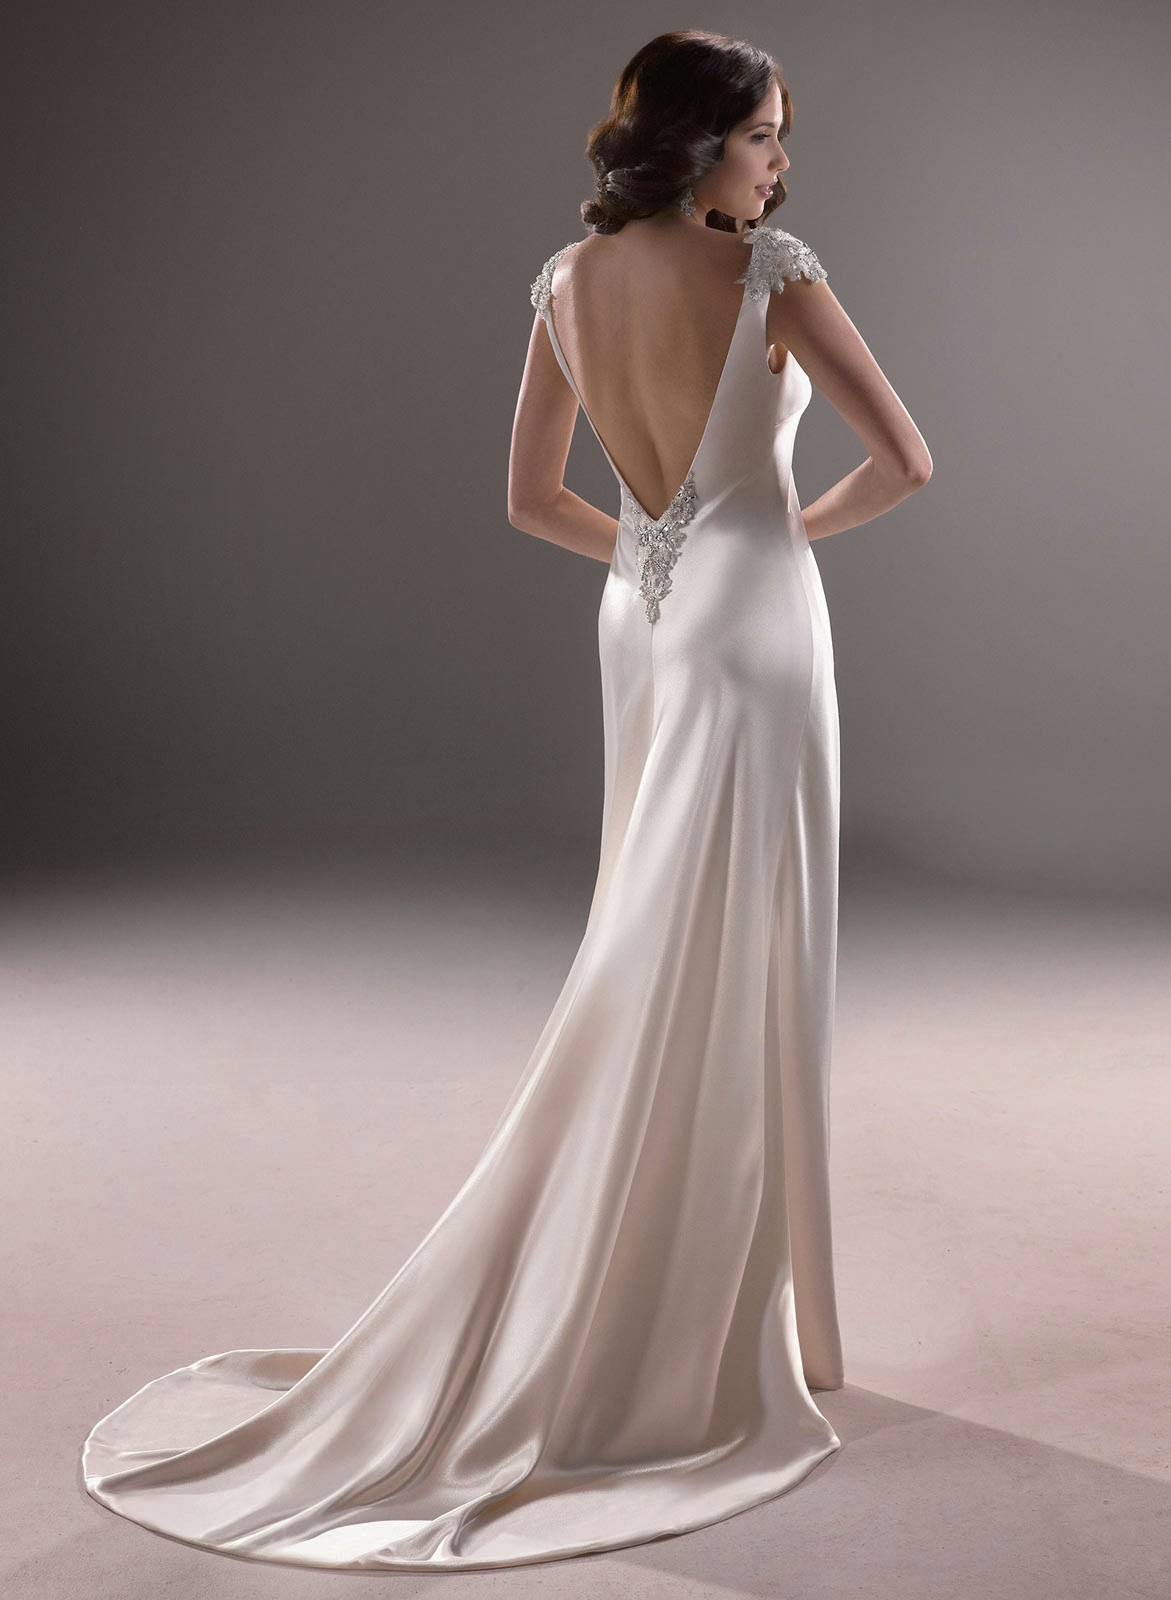 2014 Backless Wedding Dresses Trend Ideas Photos HD